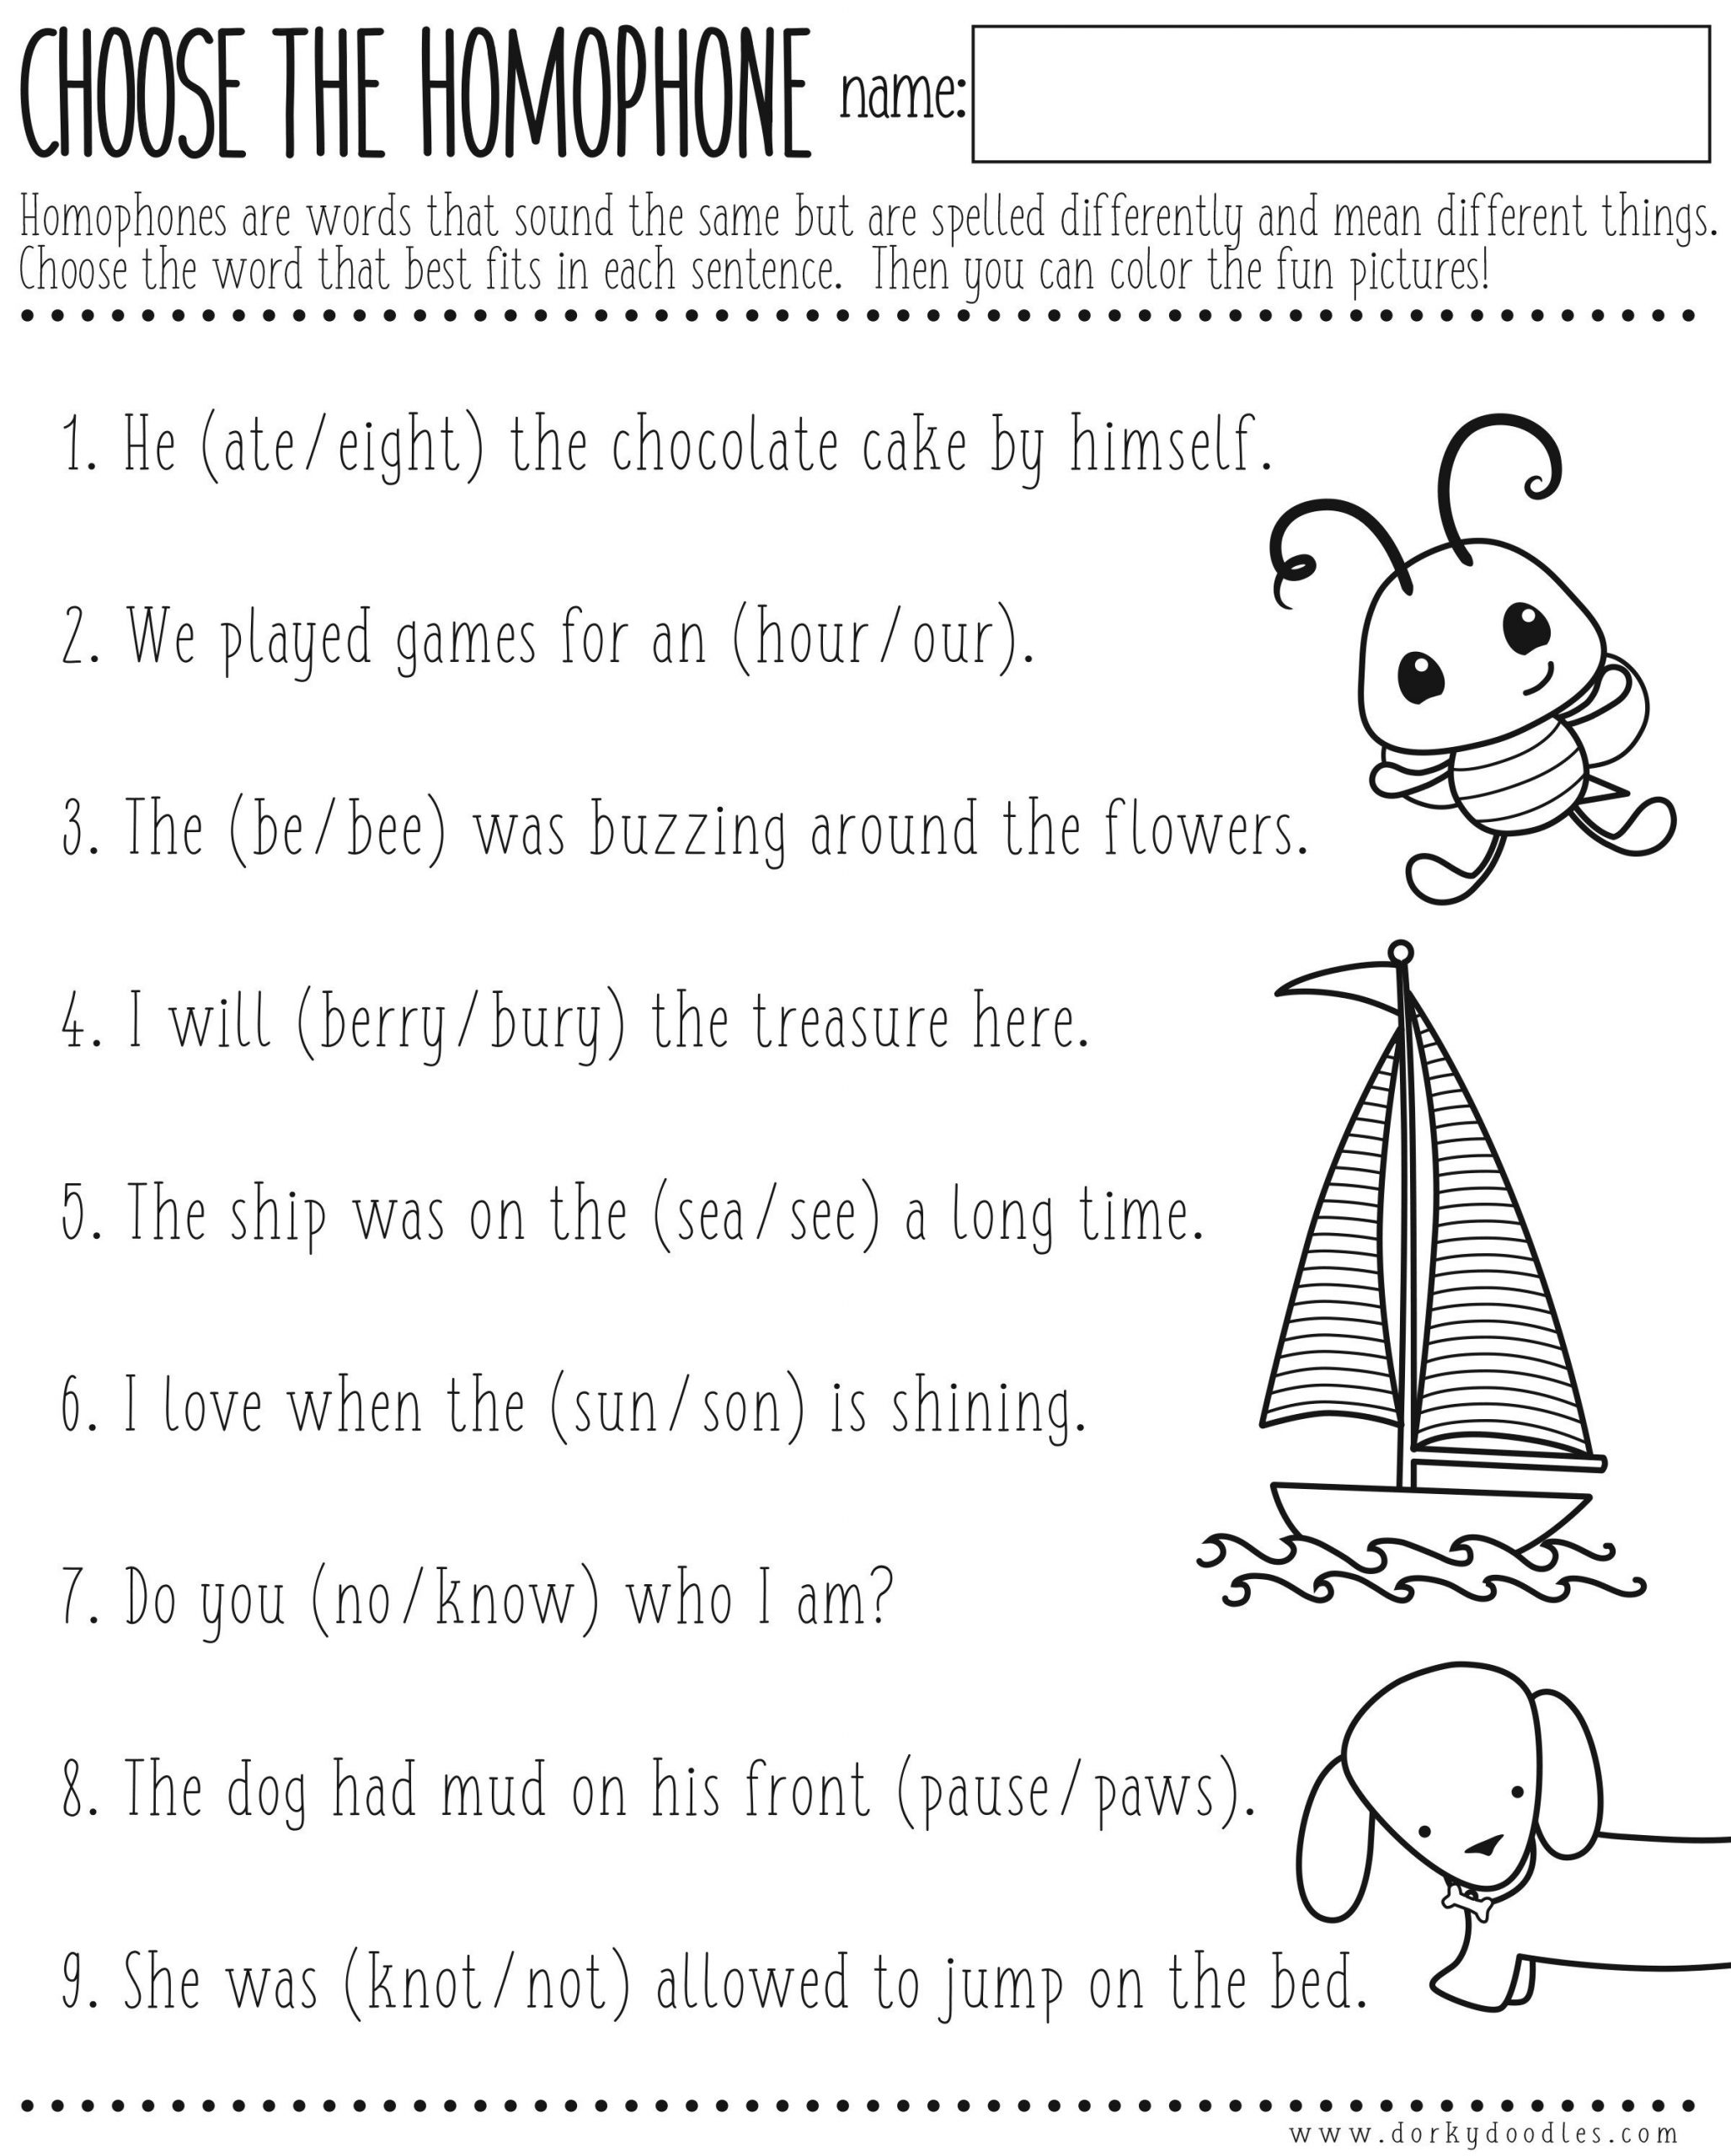 Printable Homophone Worksheets Homophones Worksheet Printable – Dorky Doodles